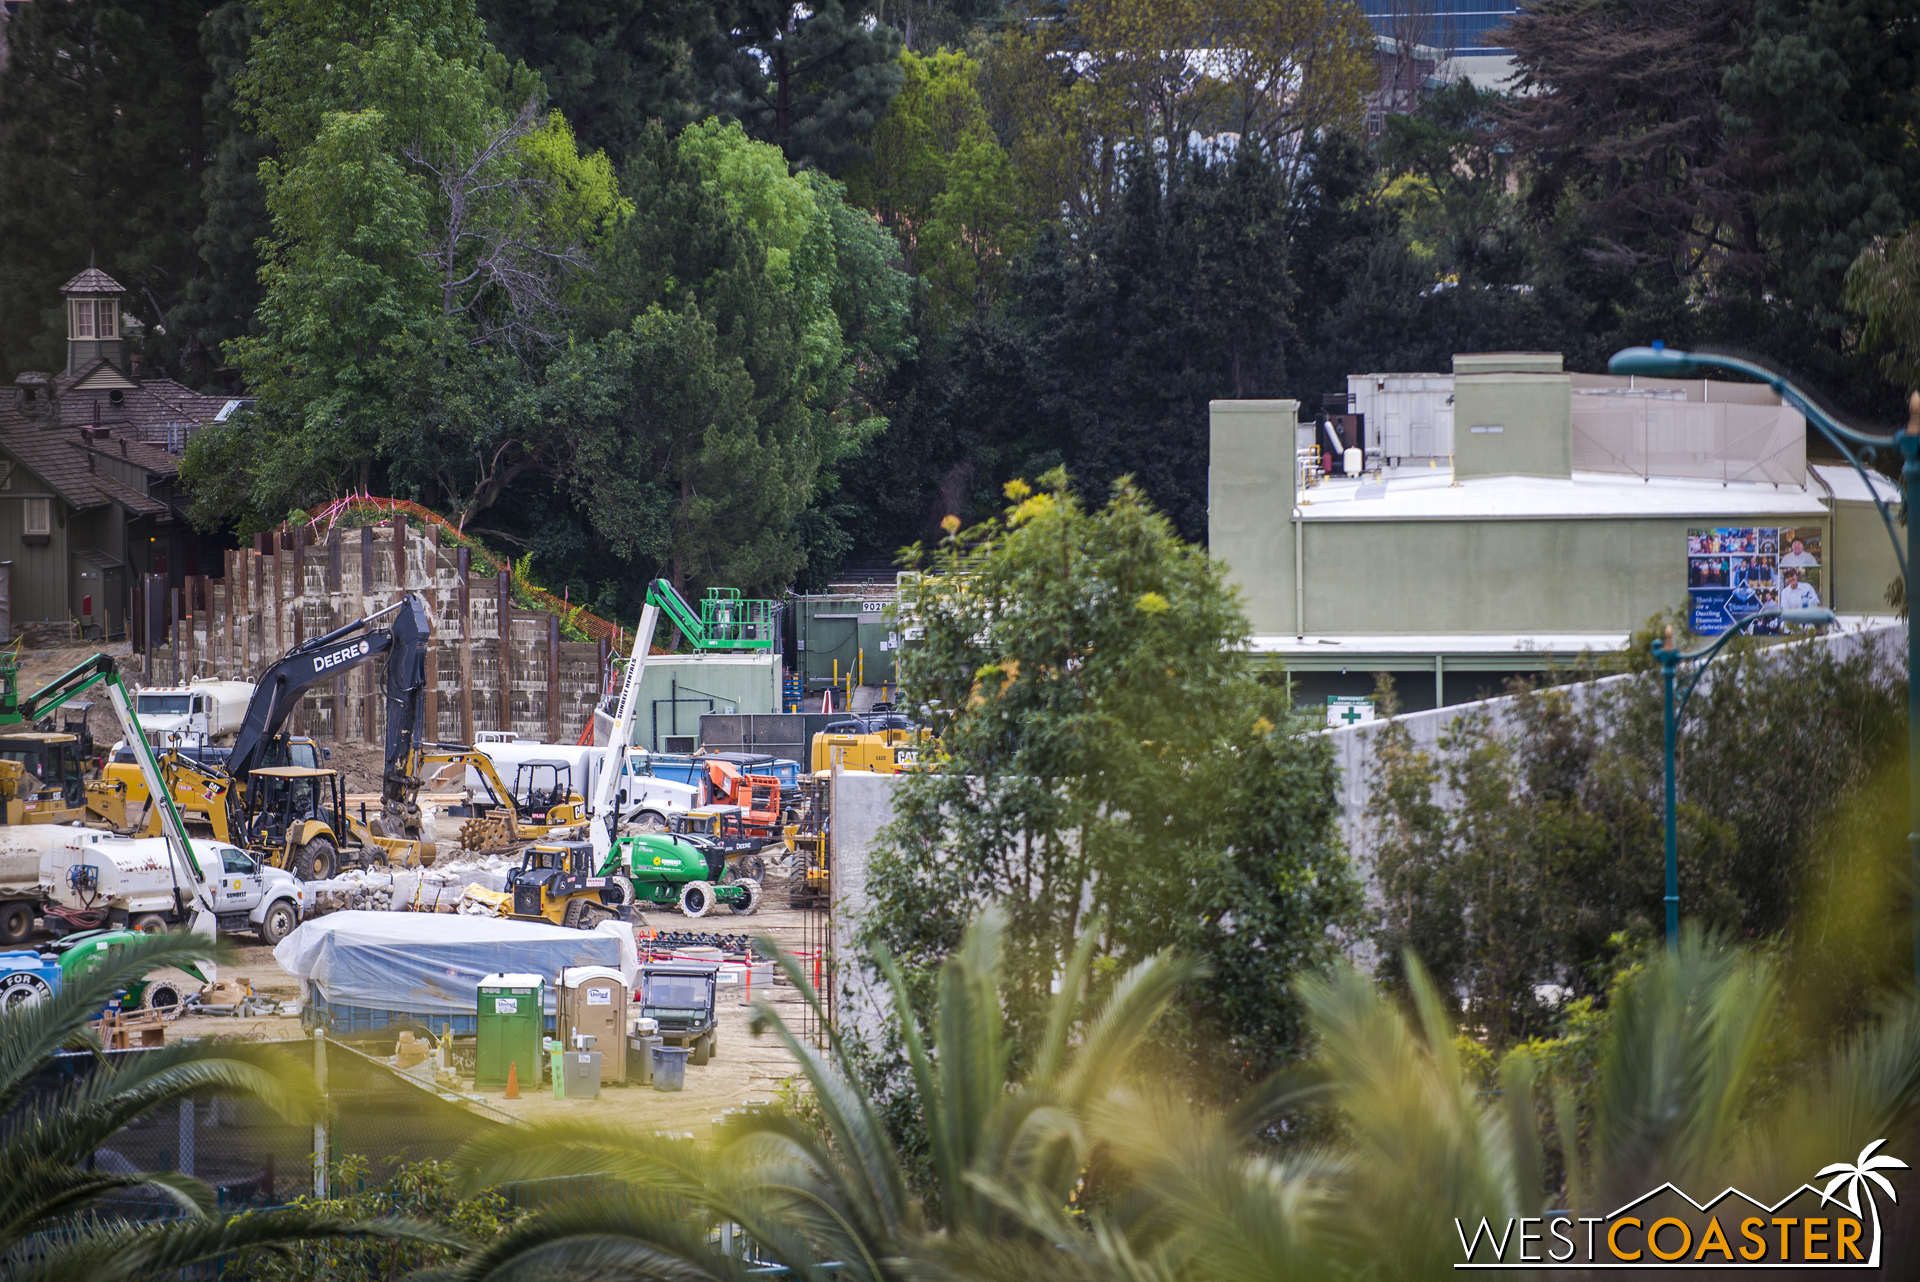 Because, remember, the Disneyland Railroad is still crossing over the Critter Country pathway between The Many Adventures of Winnie the Pooh (green building on the right) and the Hungry Bear Restaurant. So about left of the berm retaining wall in this photo. But then (if we're to trust the rendering Disney previously released), it runs visibly along the reconfigured bank of the Rivers of America.